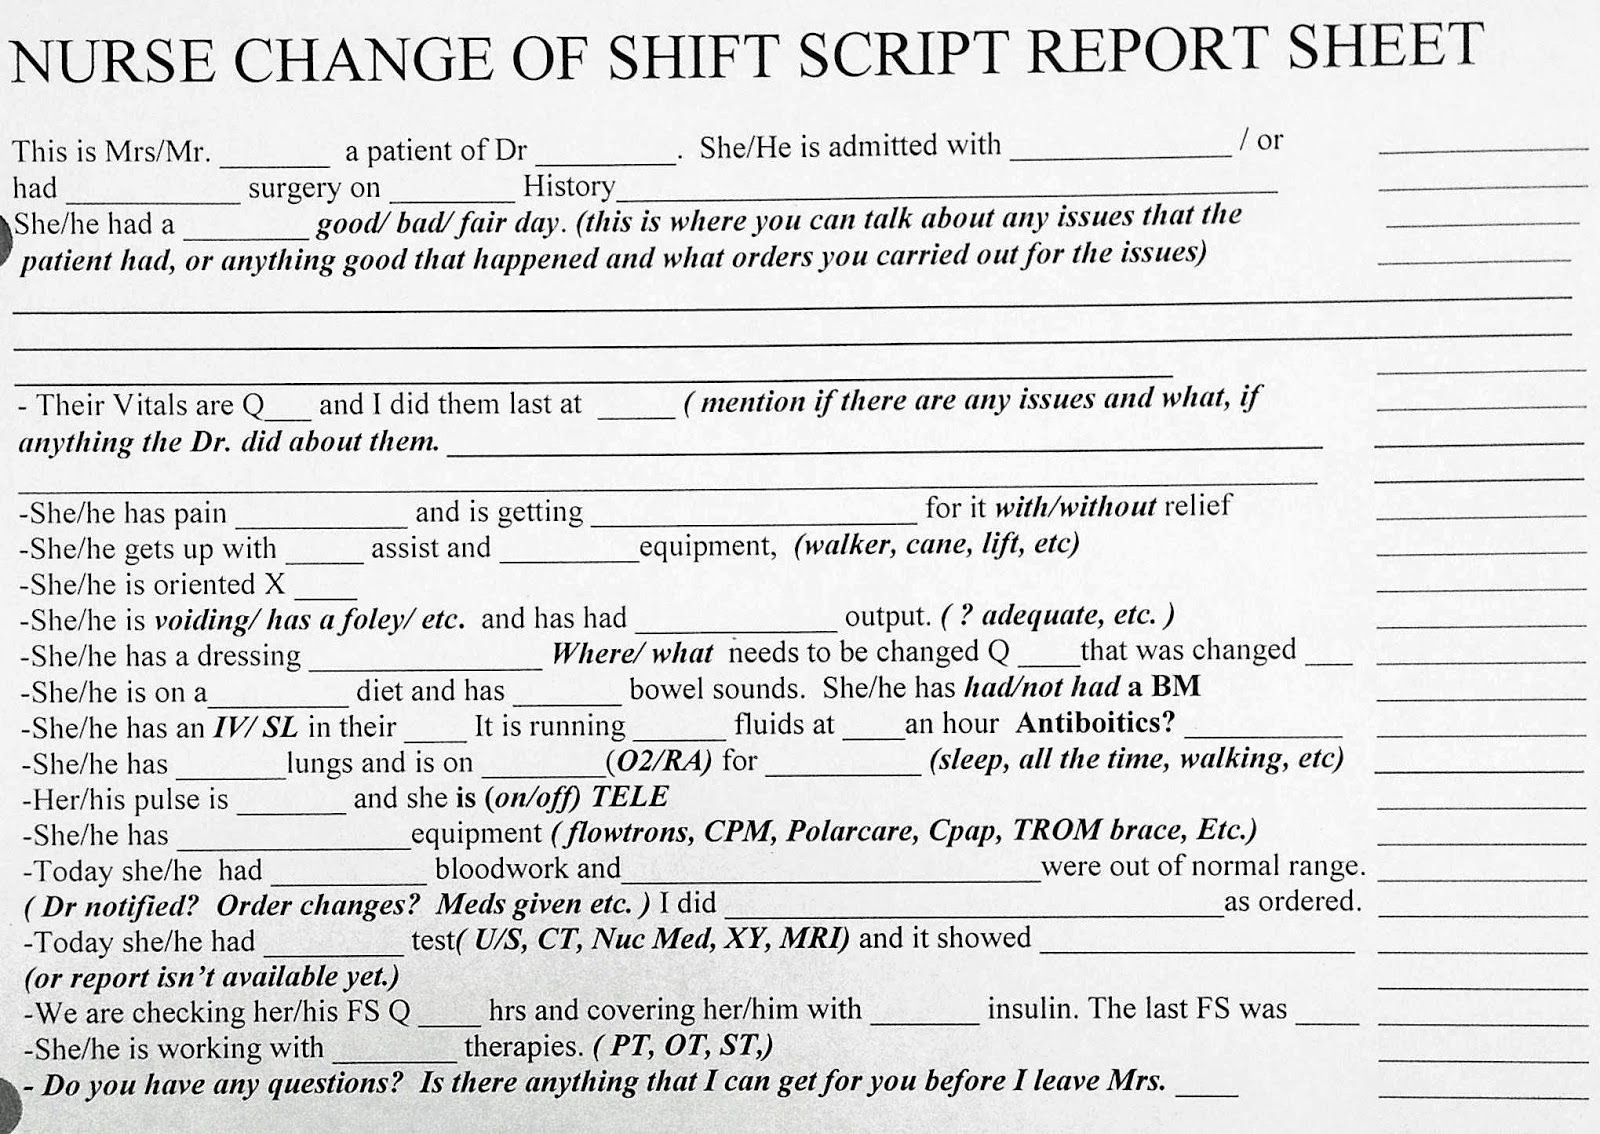 Nursing Shift Report Template New Awesome New Grad or Experienced Nurse Change Of Shift